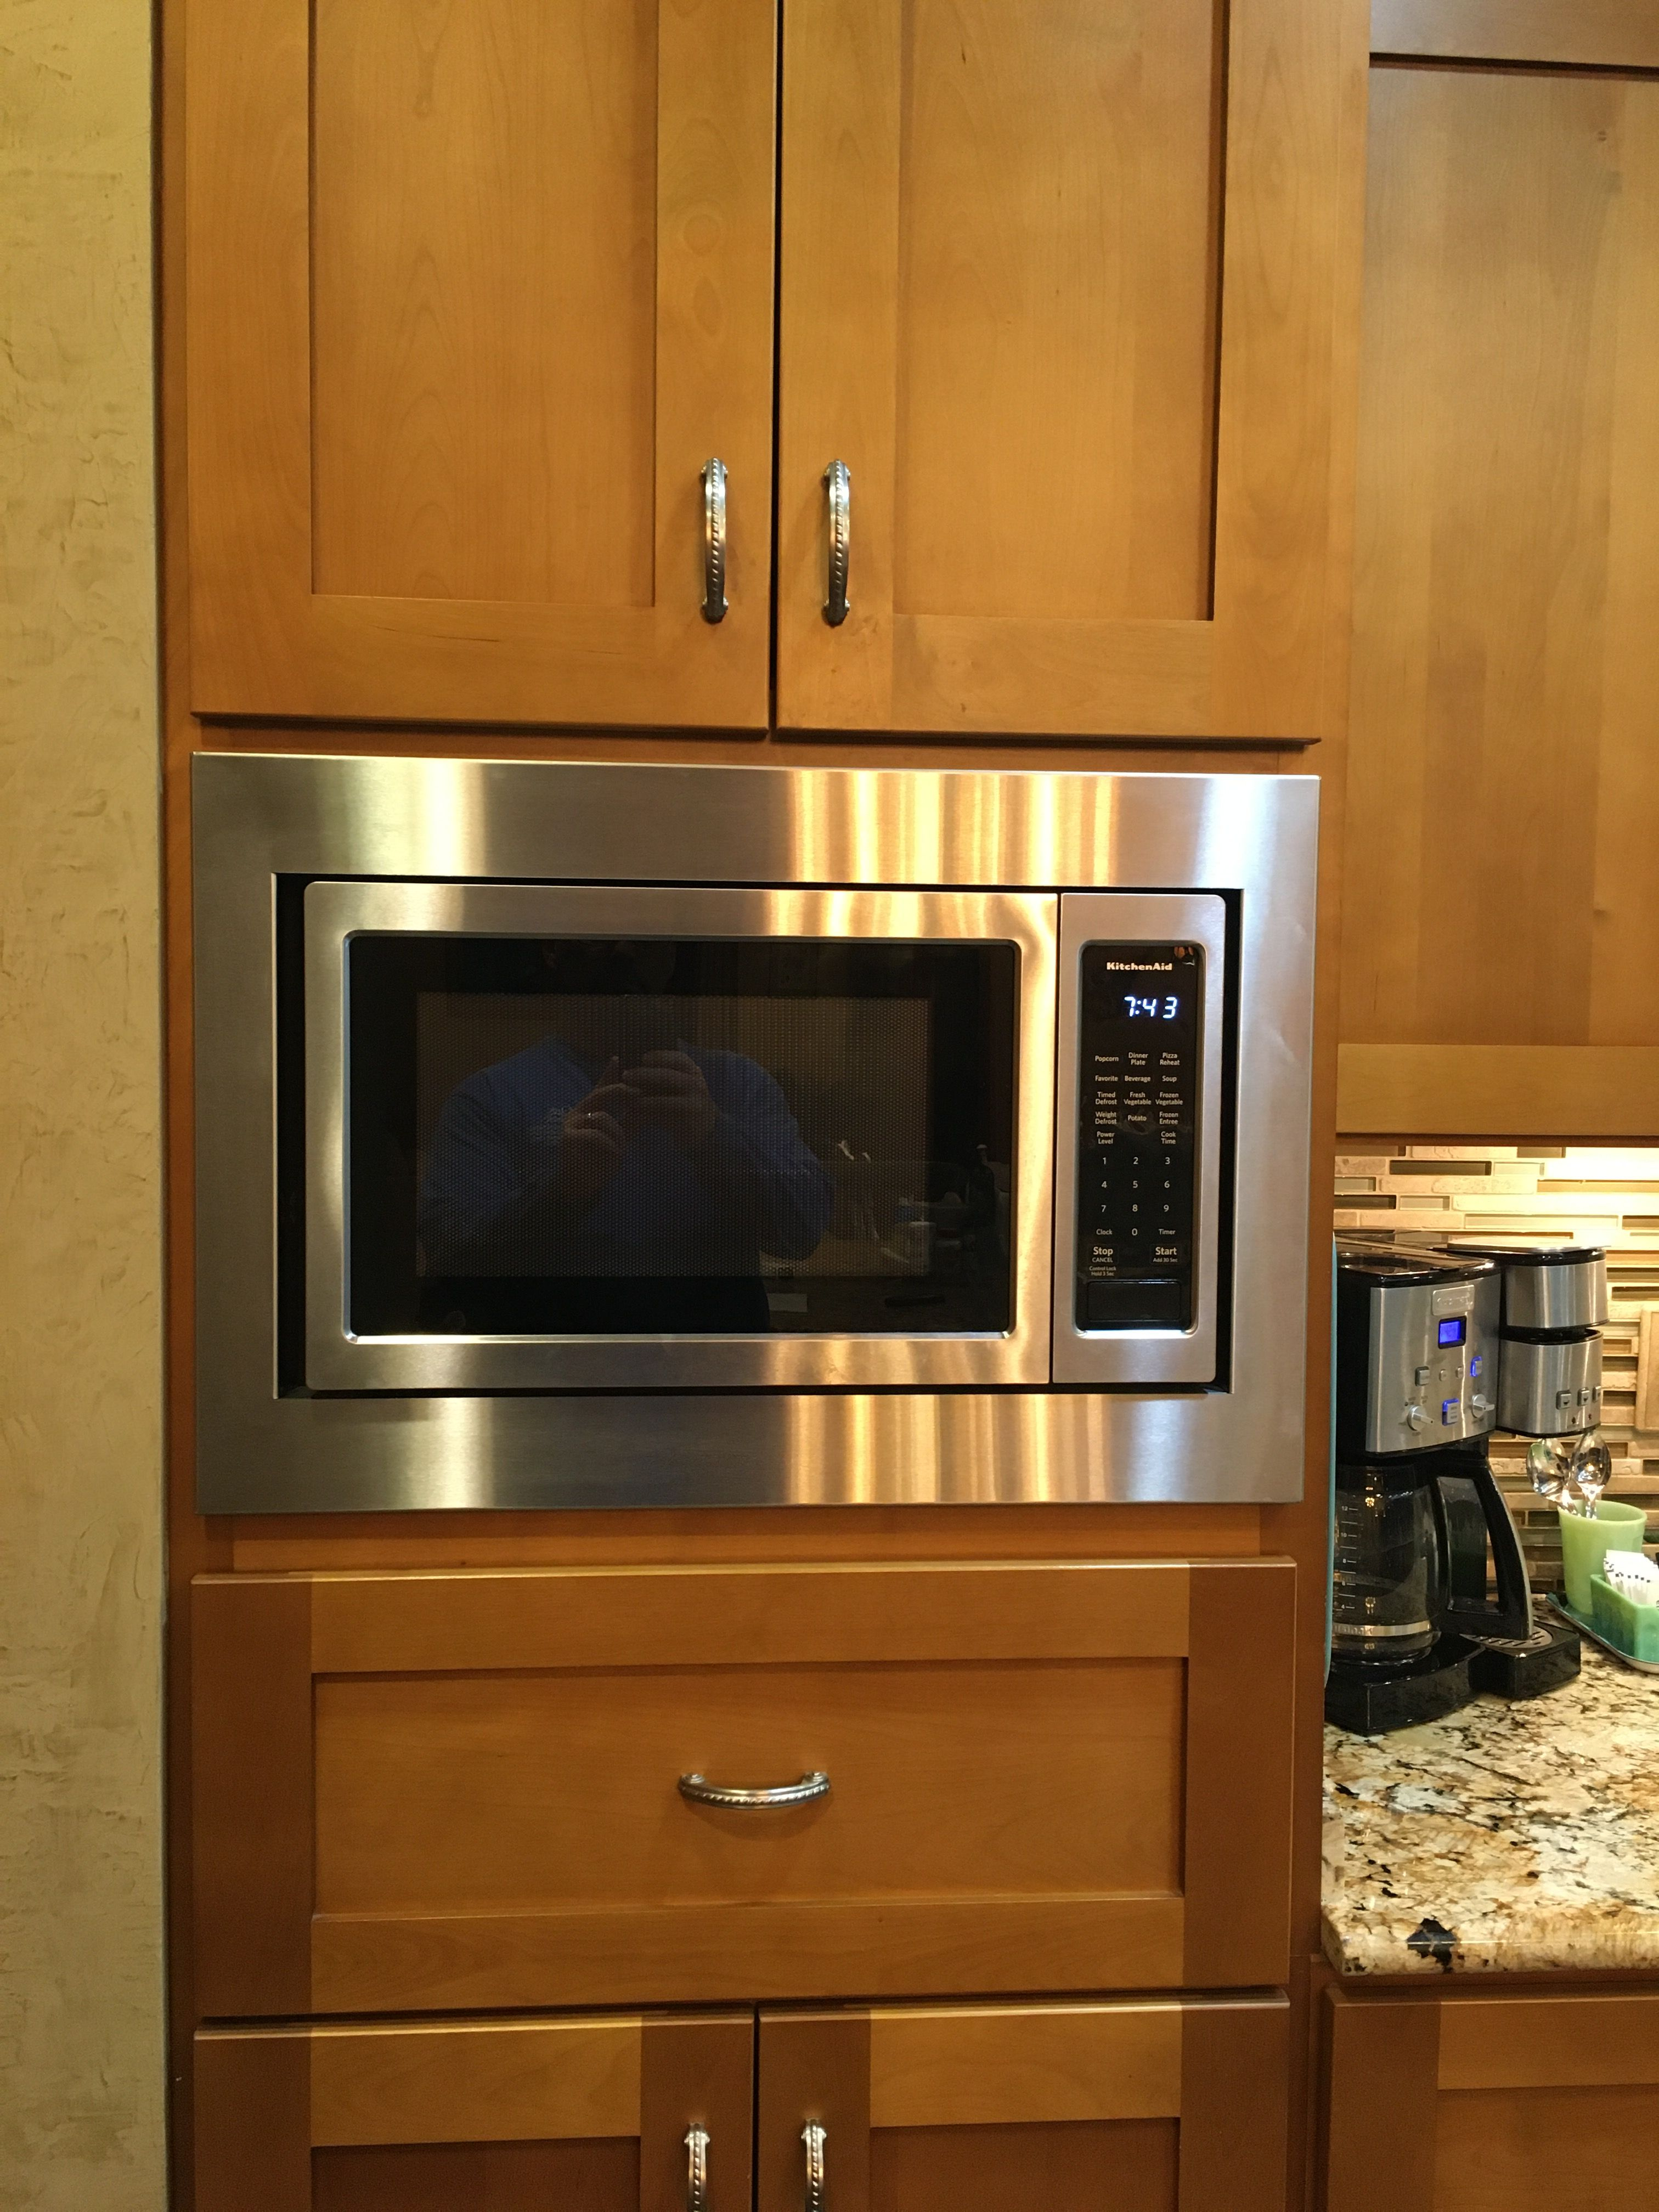 are kitchenaid dishwashers made in the usa